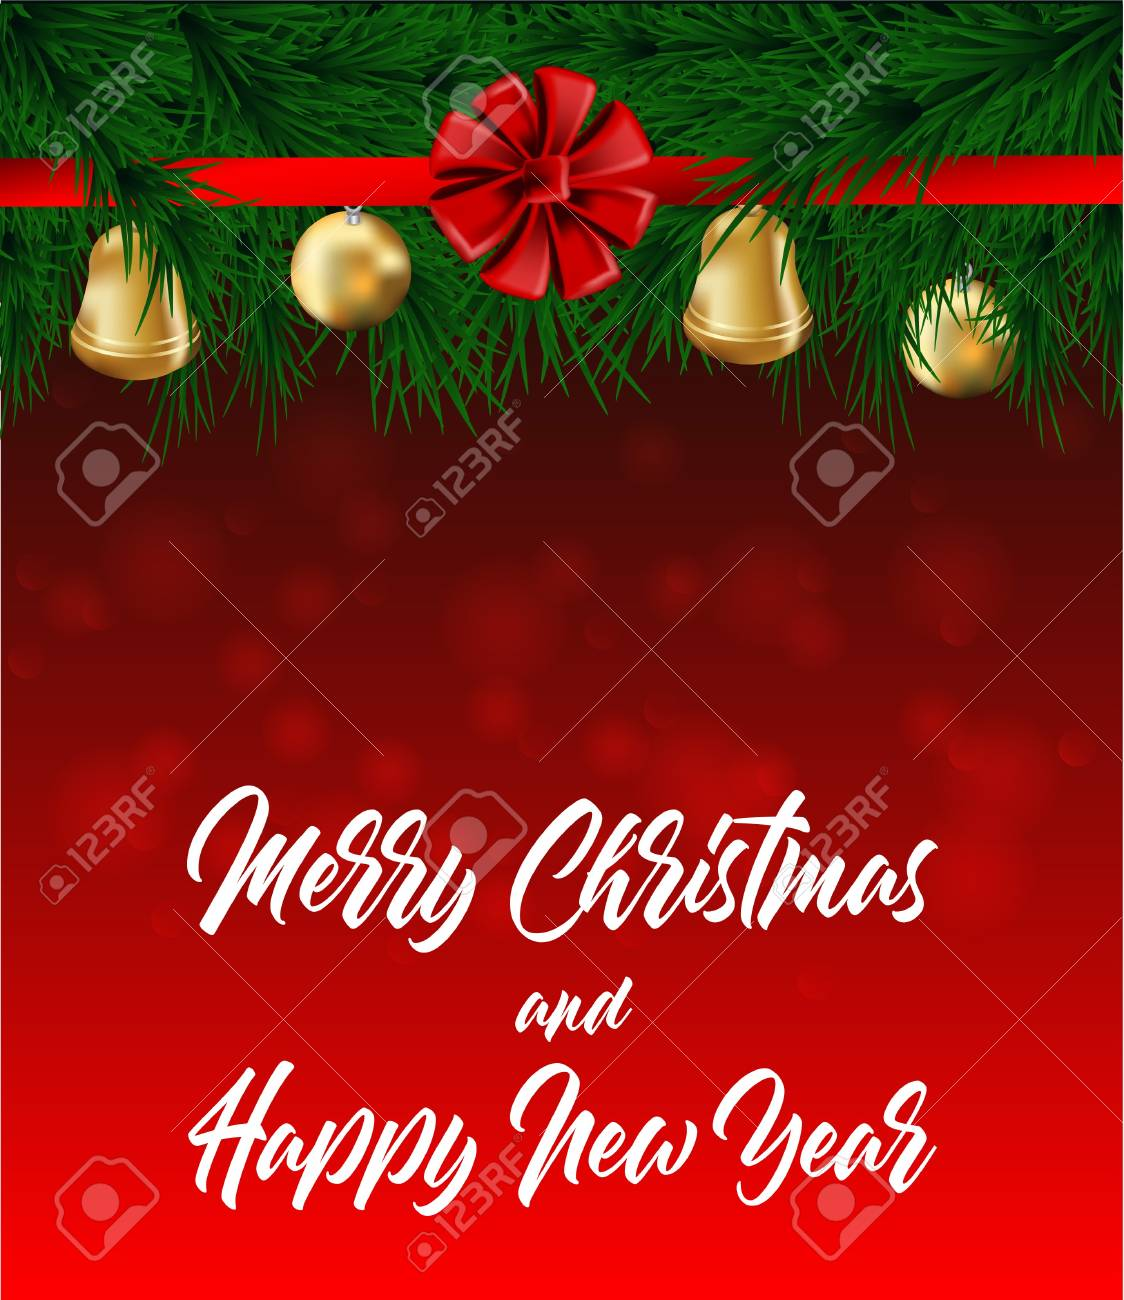 merry christmas and happy new year card christmas decoration design christmas tree bells